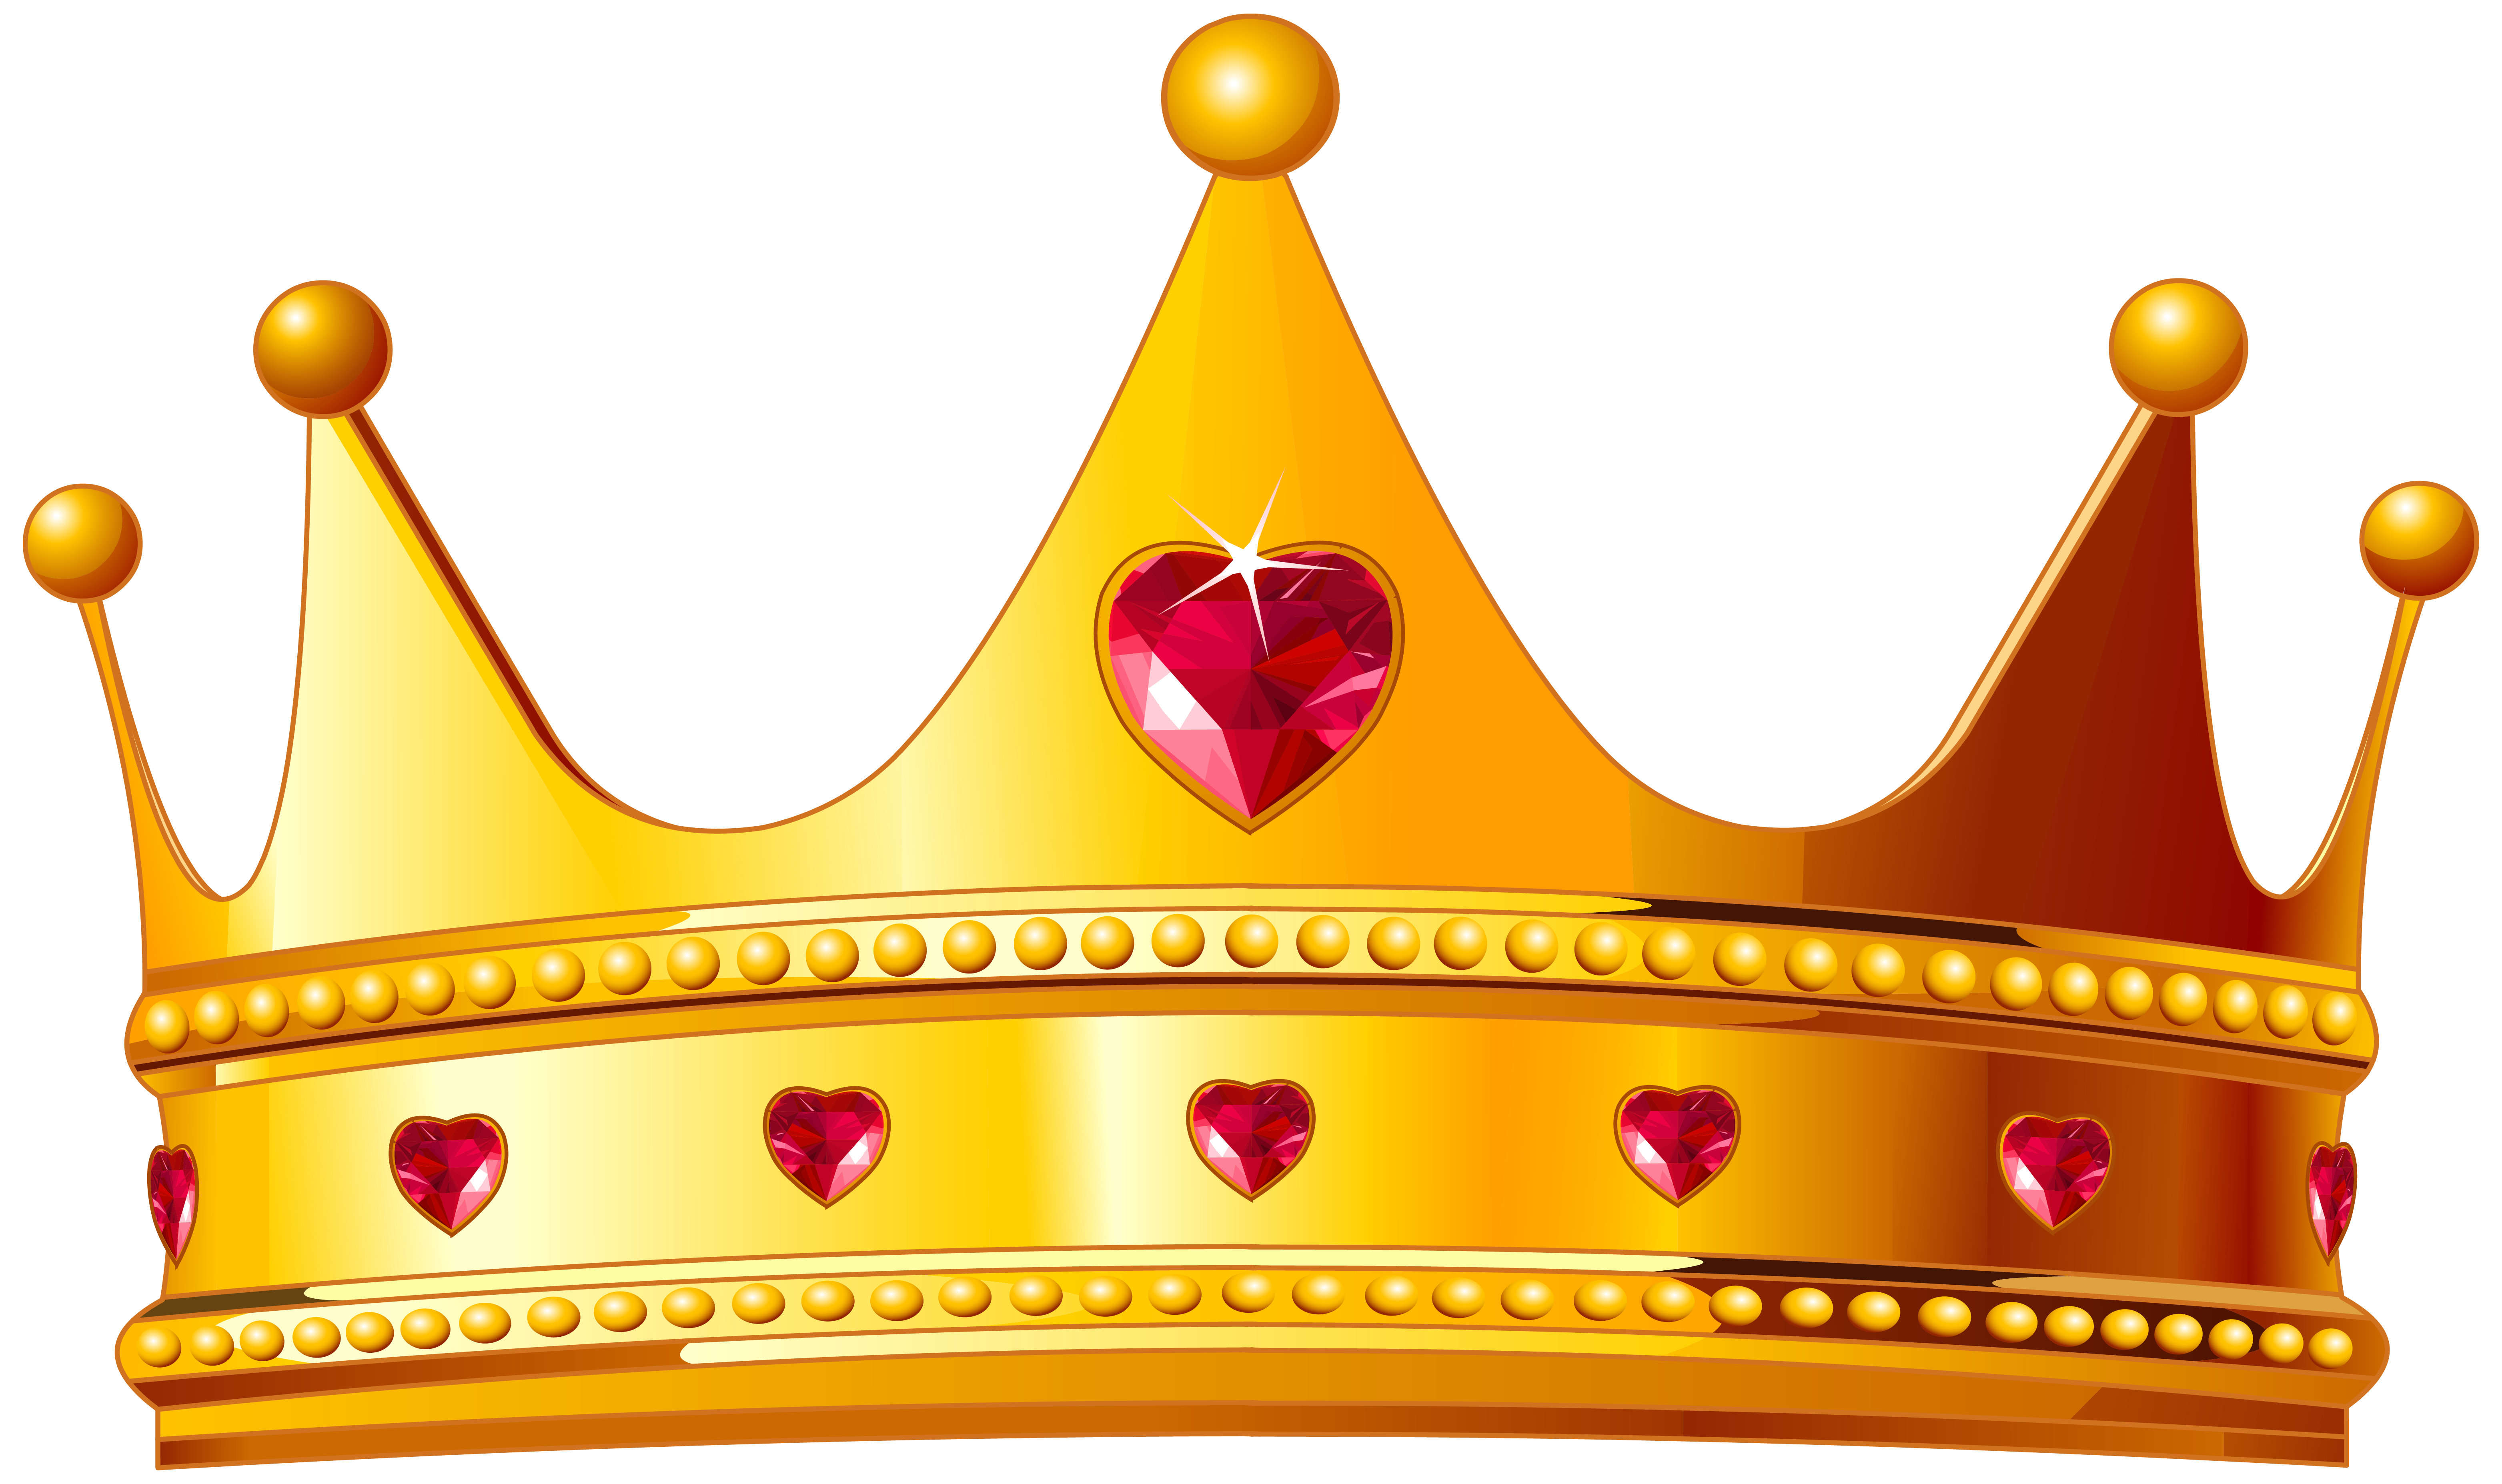 Golden with hearts clipart. Queen crown png clip art black and white download